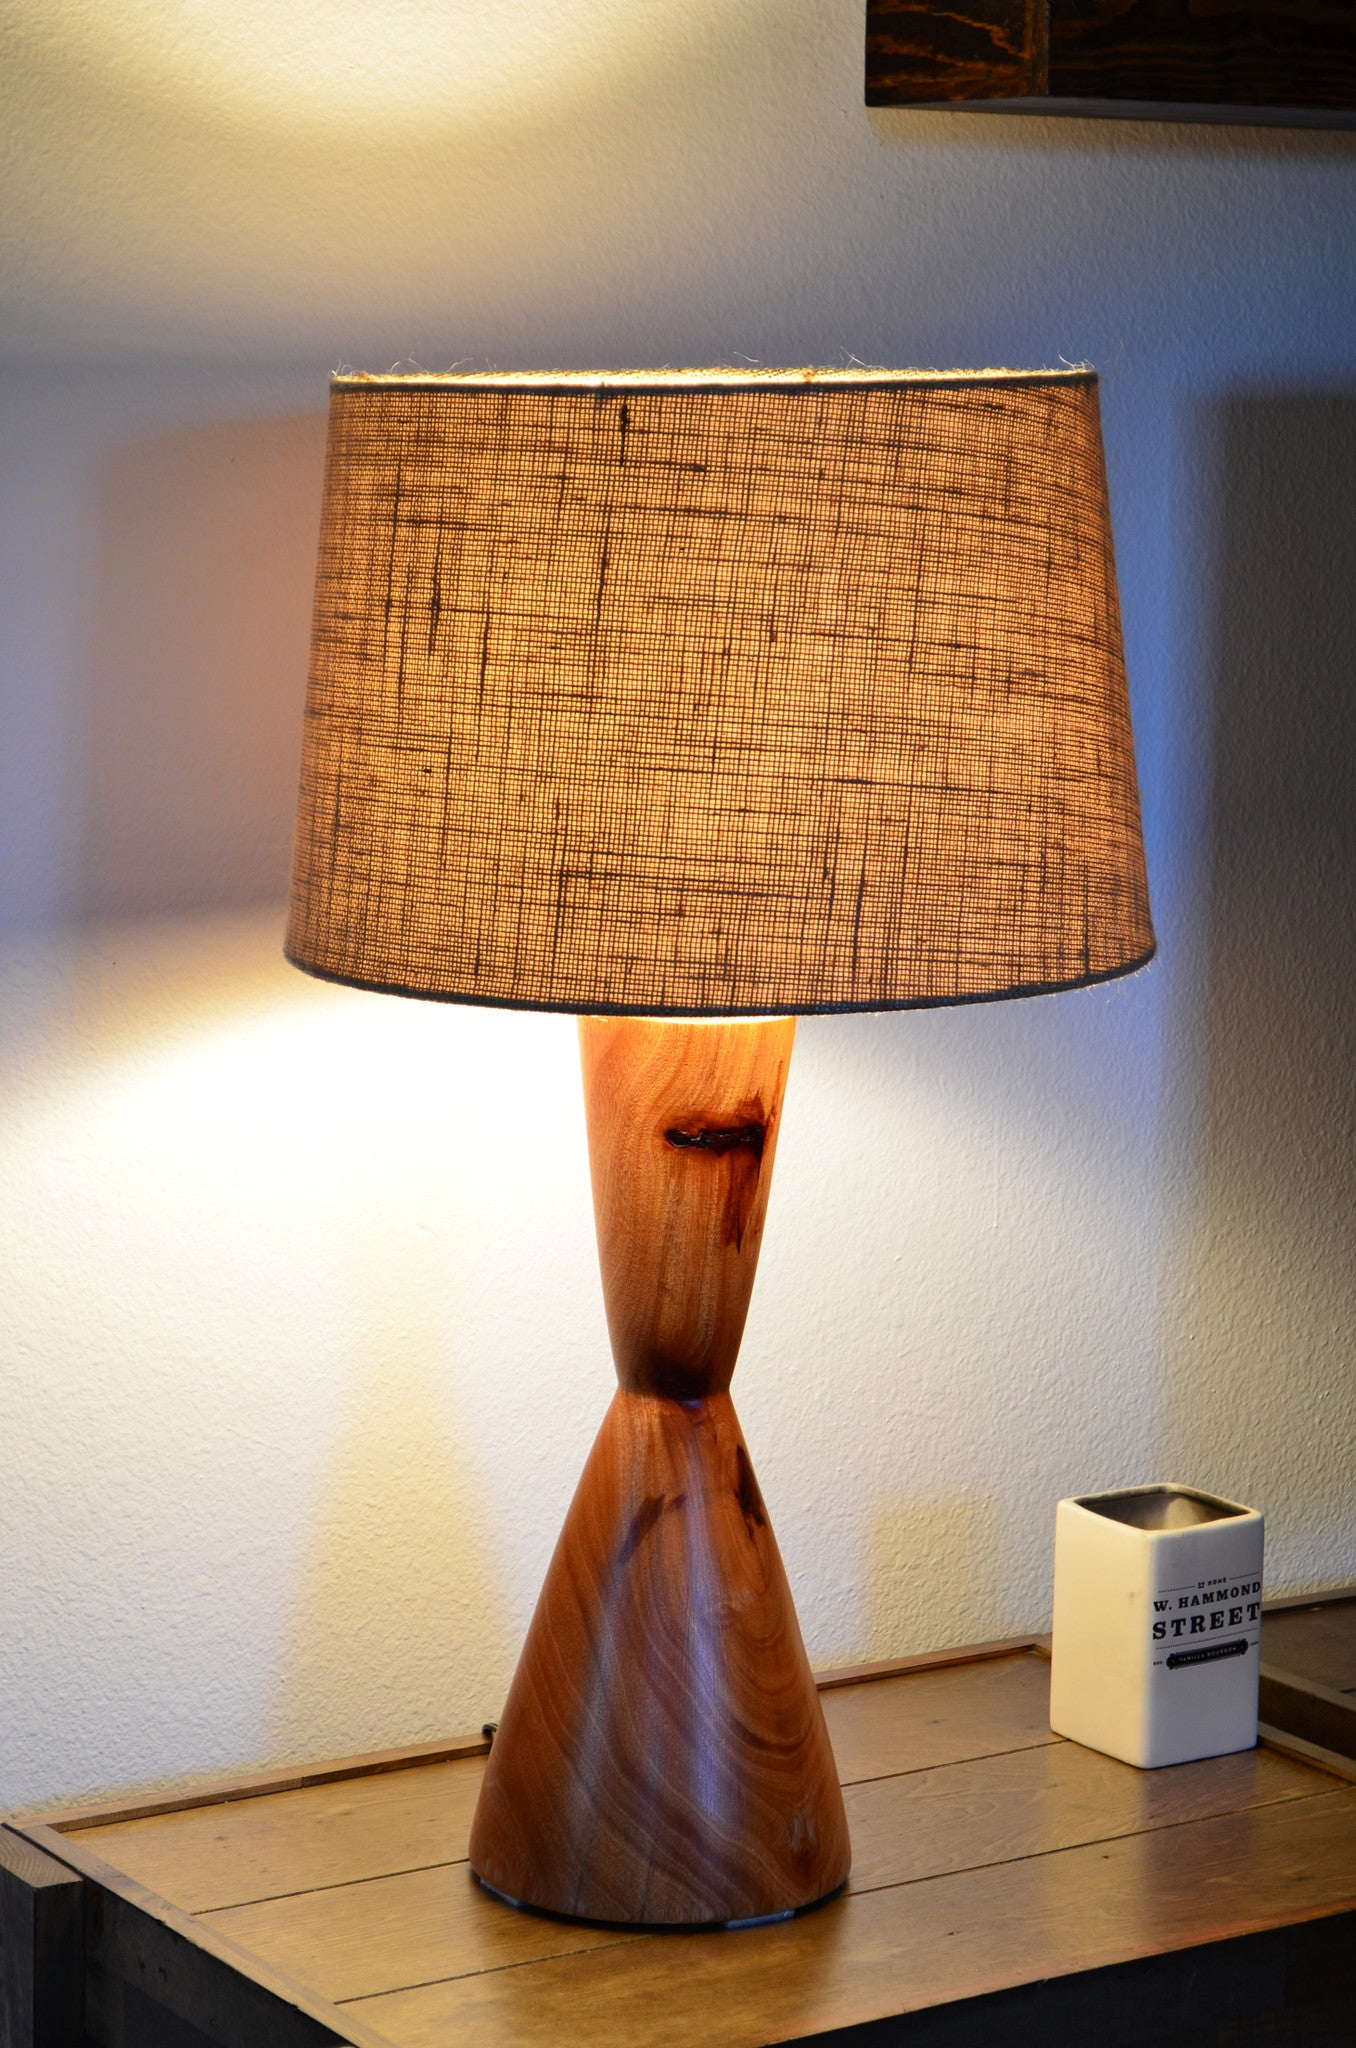 Wood Turned Mid Century Modern Table Lamp Hourglass  : SolidWoodRetroTableLampMidCenturyModernHourglass from www.woodwaves.com size 1356 x 2048 jpeg 575kB